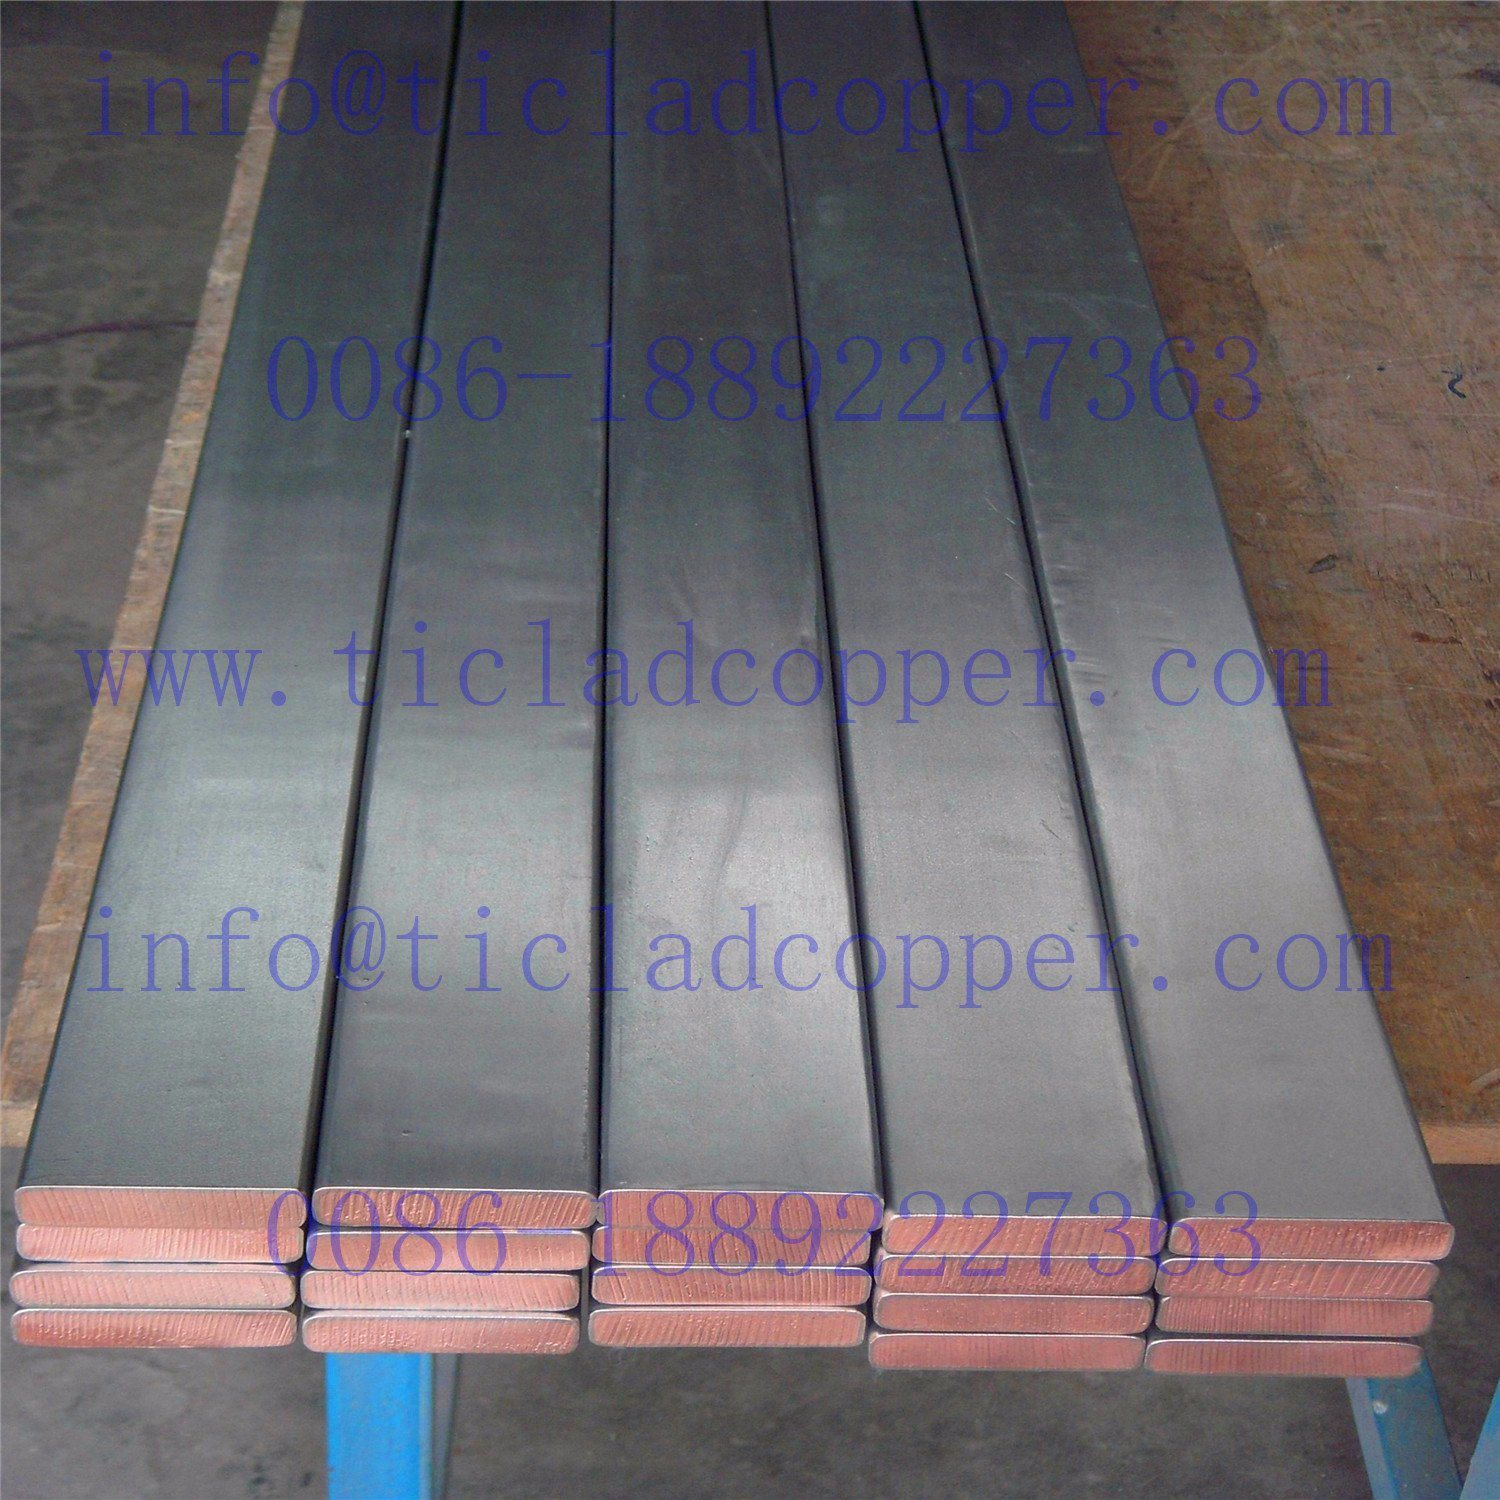 Titanium Clad Copper Bar for Copper Foil Electrowinning